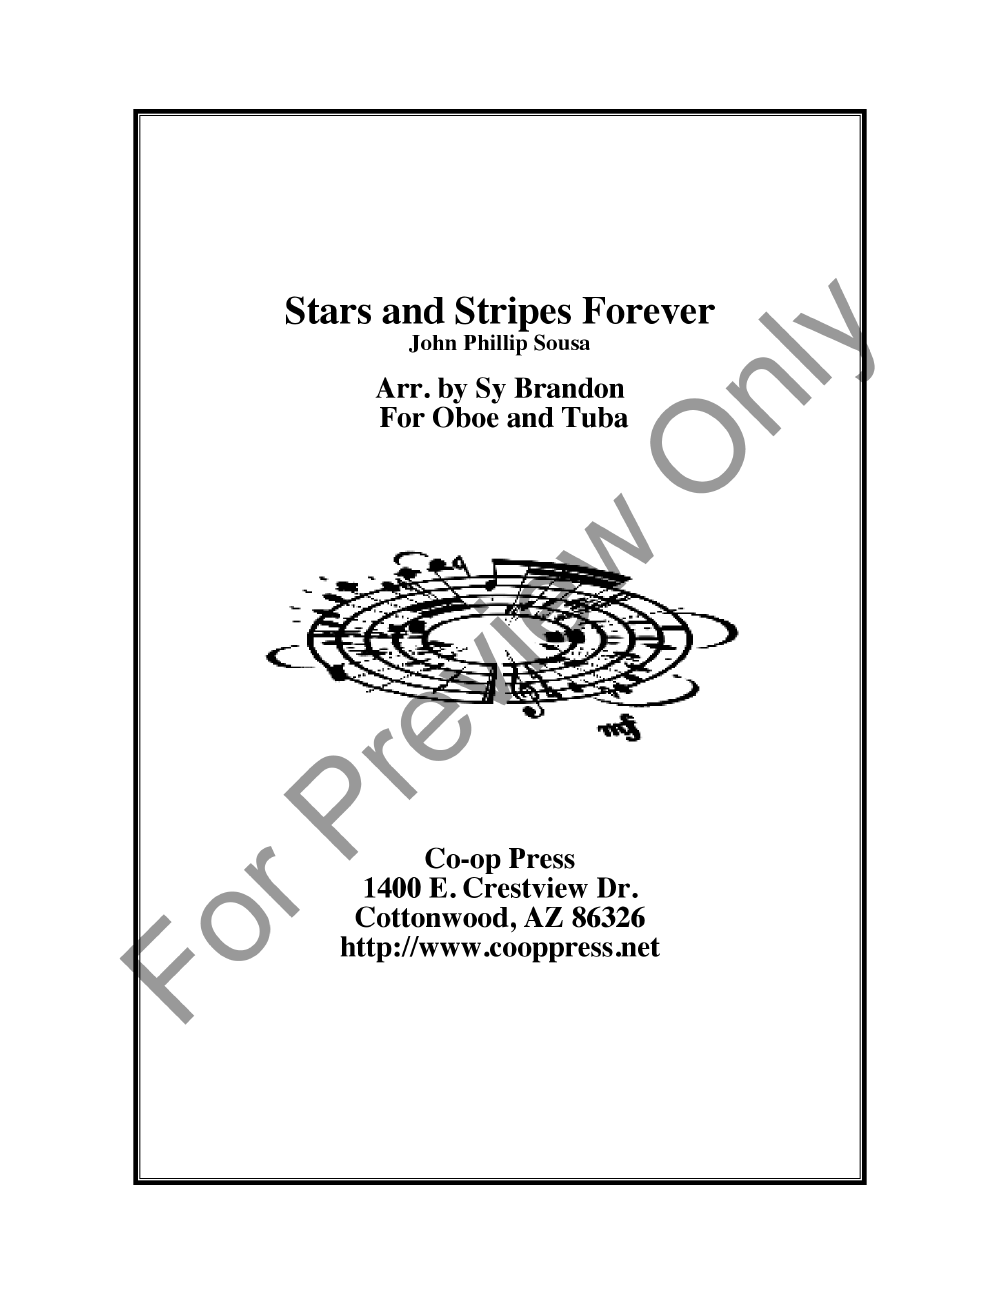 The Stars and Stripes Forever Thumbnail